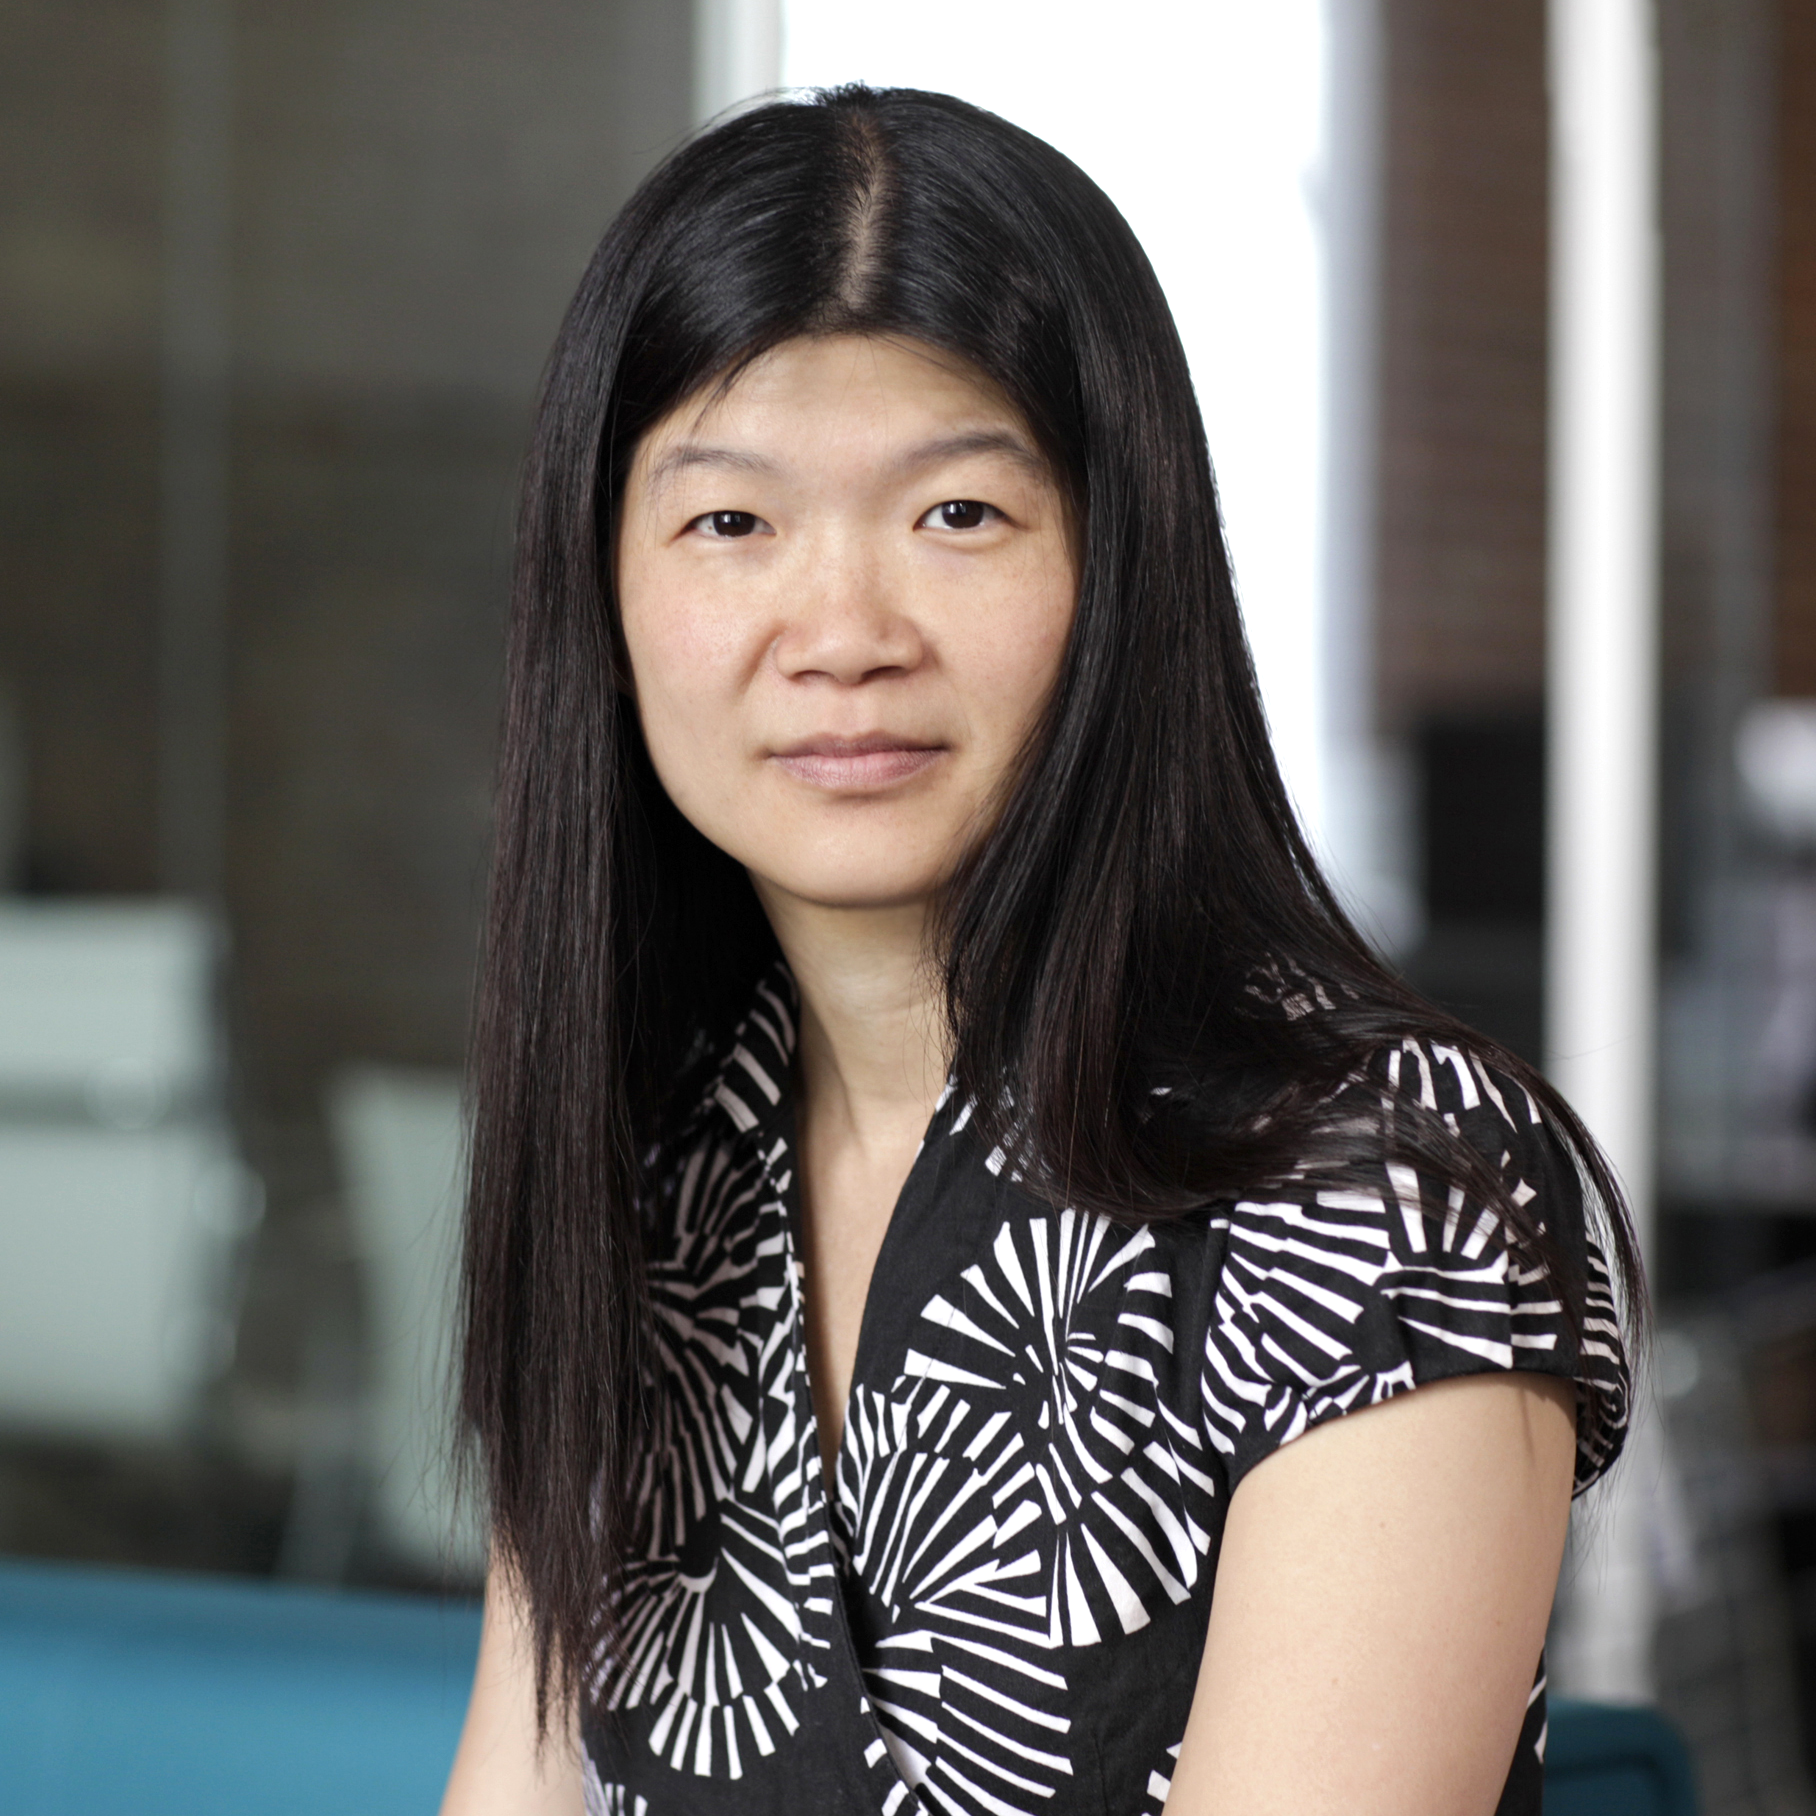 LILI HU   Principal & Chief Financial Officer